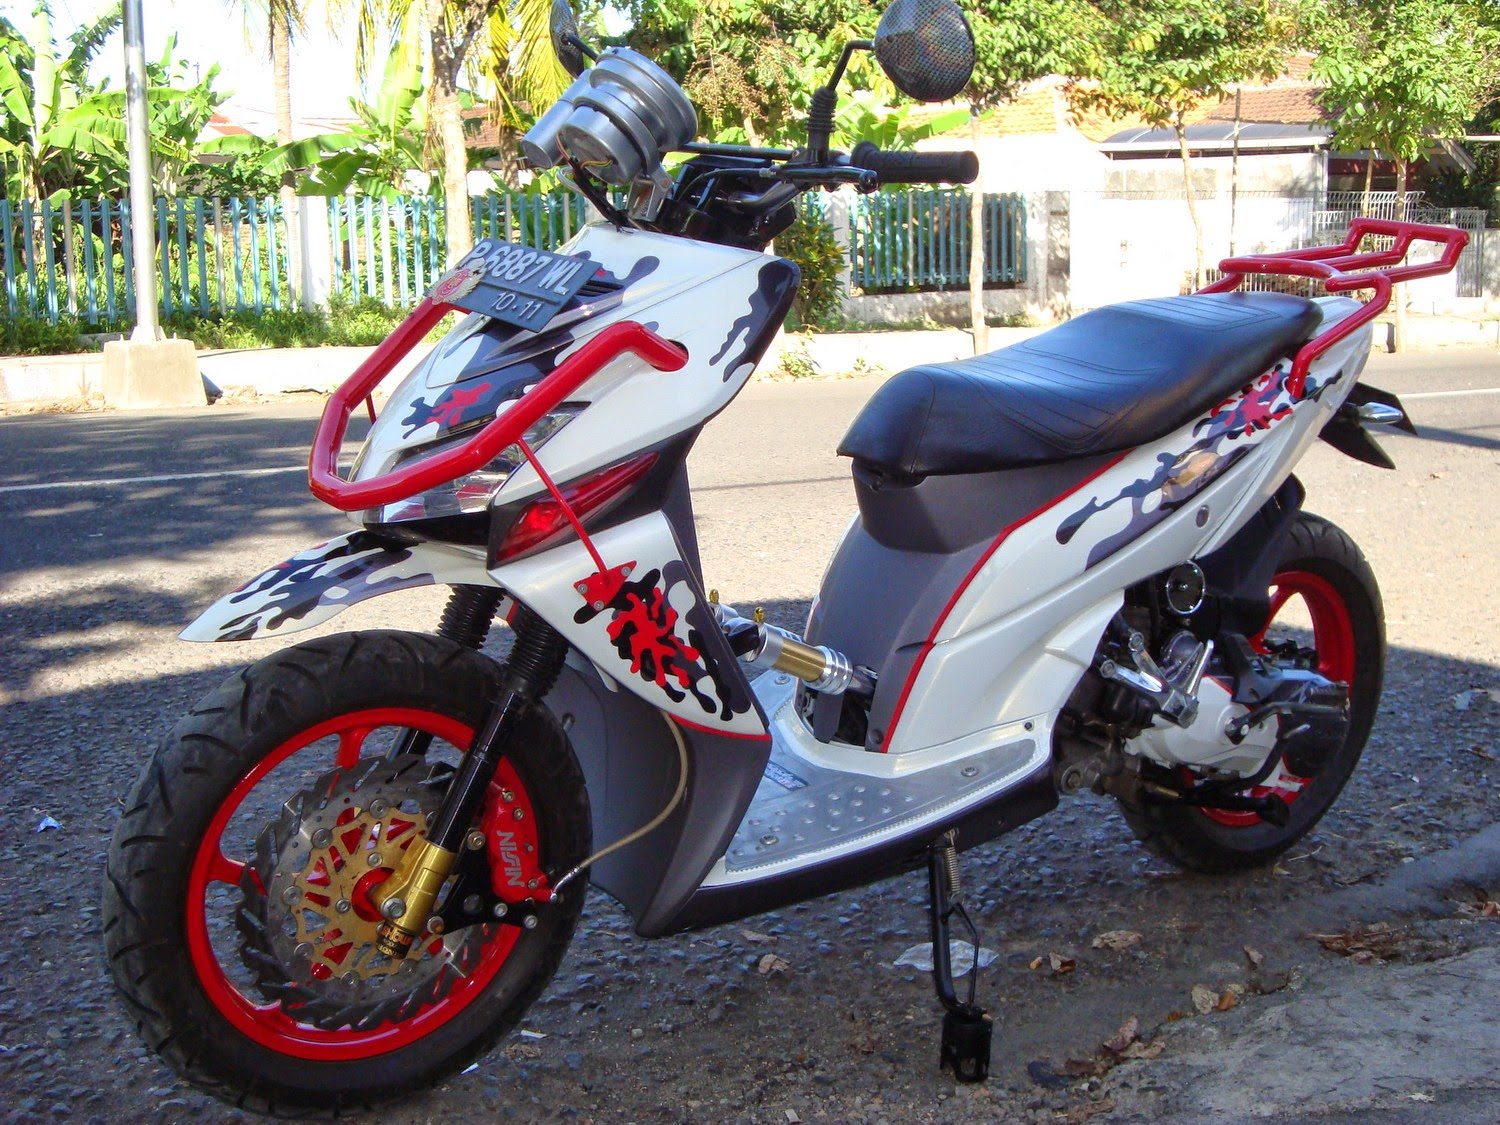 referensi modifikasi motor honda beat fi cw